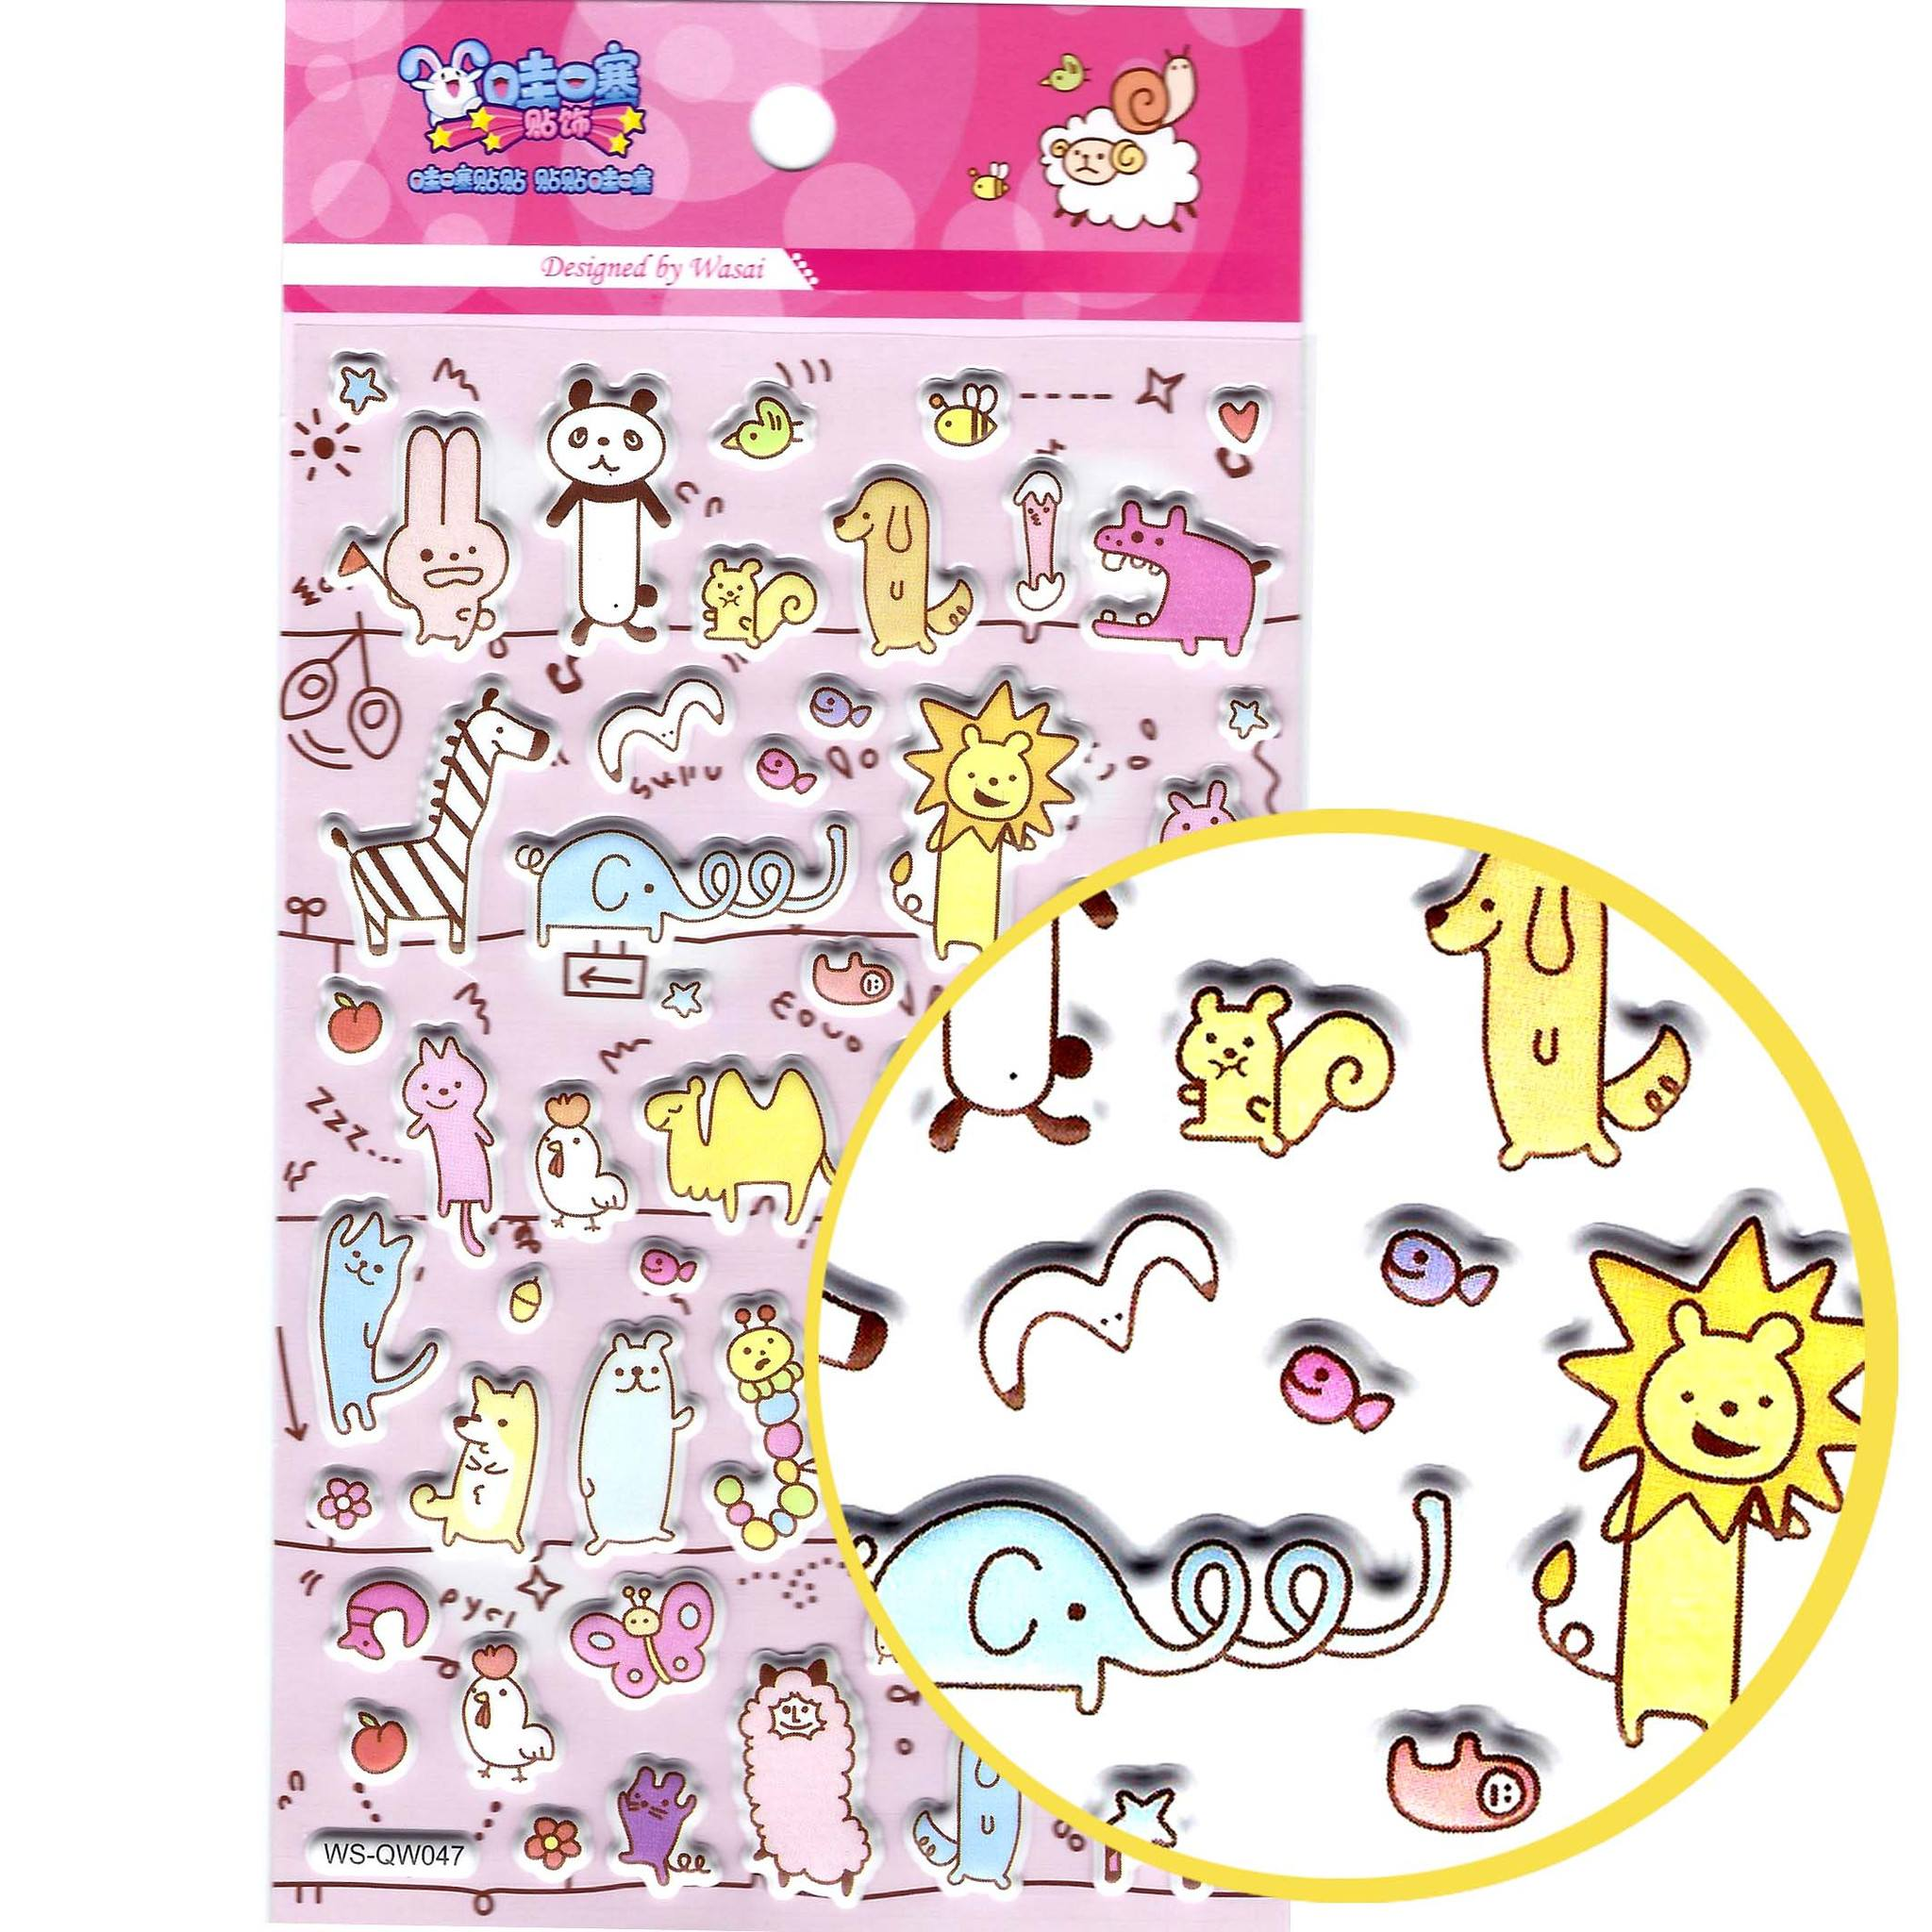 Adorable Animal Party Illustrated Cartoon Animal Stickers | Stationery